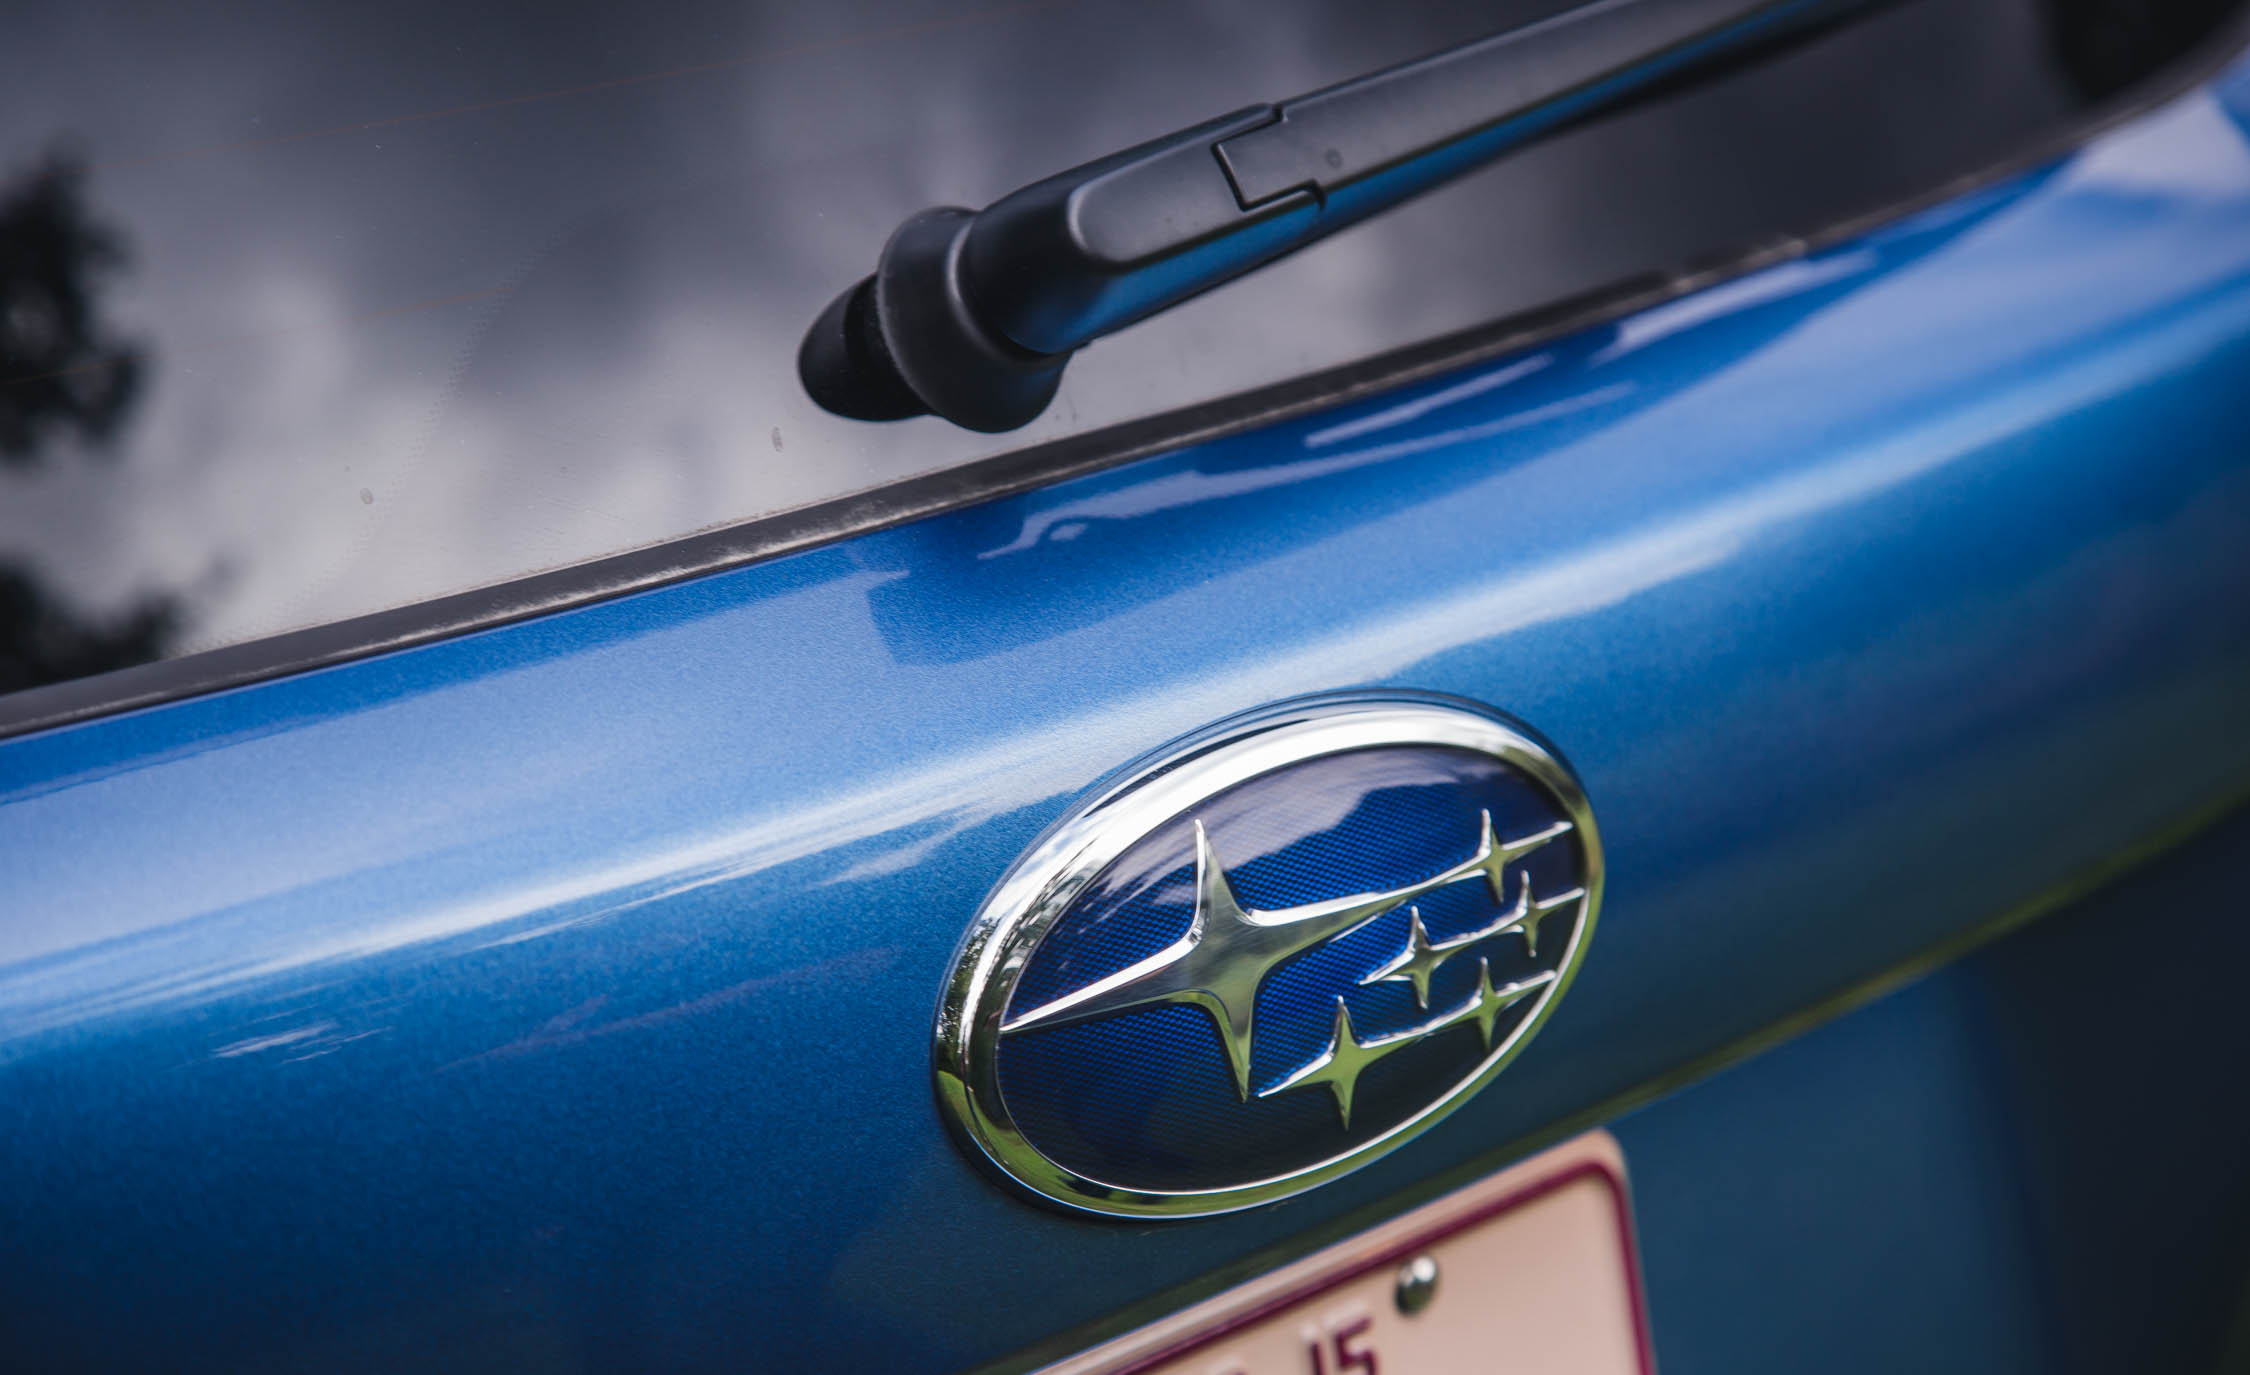 2016 Subaru Forester 2 0xt Touring Exterior Badge Rear (Photo 4 of 29)